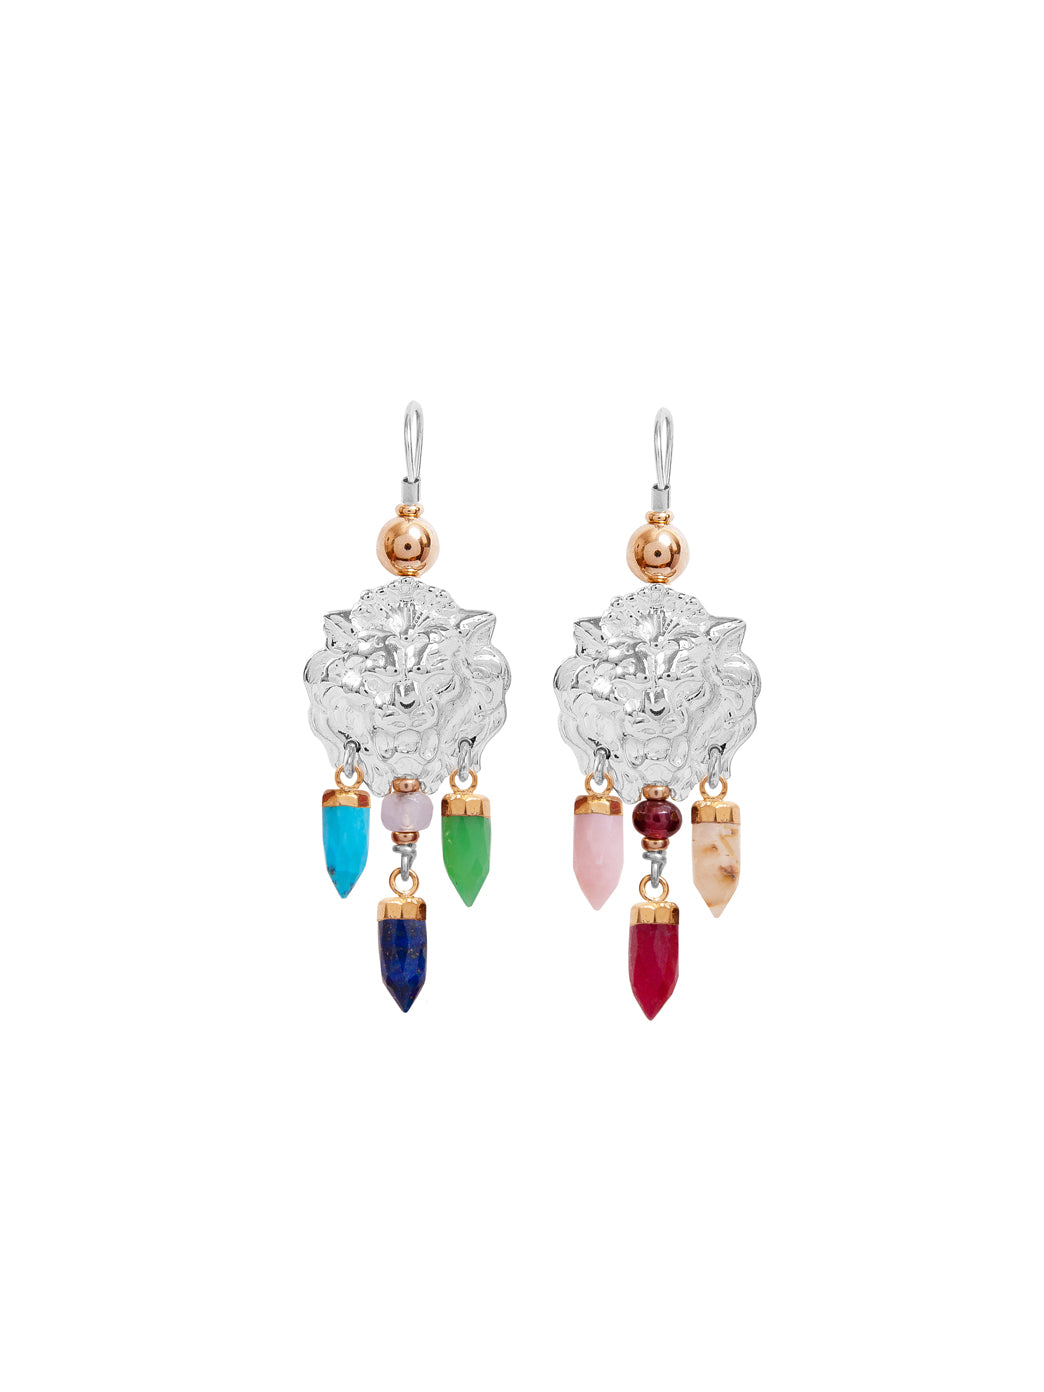 Fiorina Jewellery Taormina Earrings Chakra